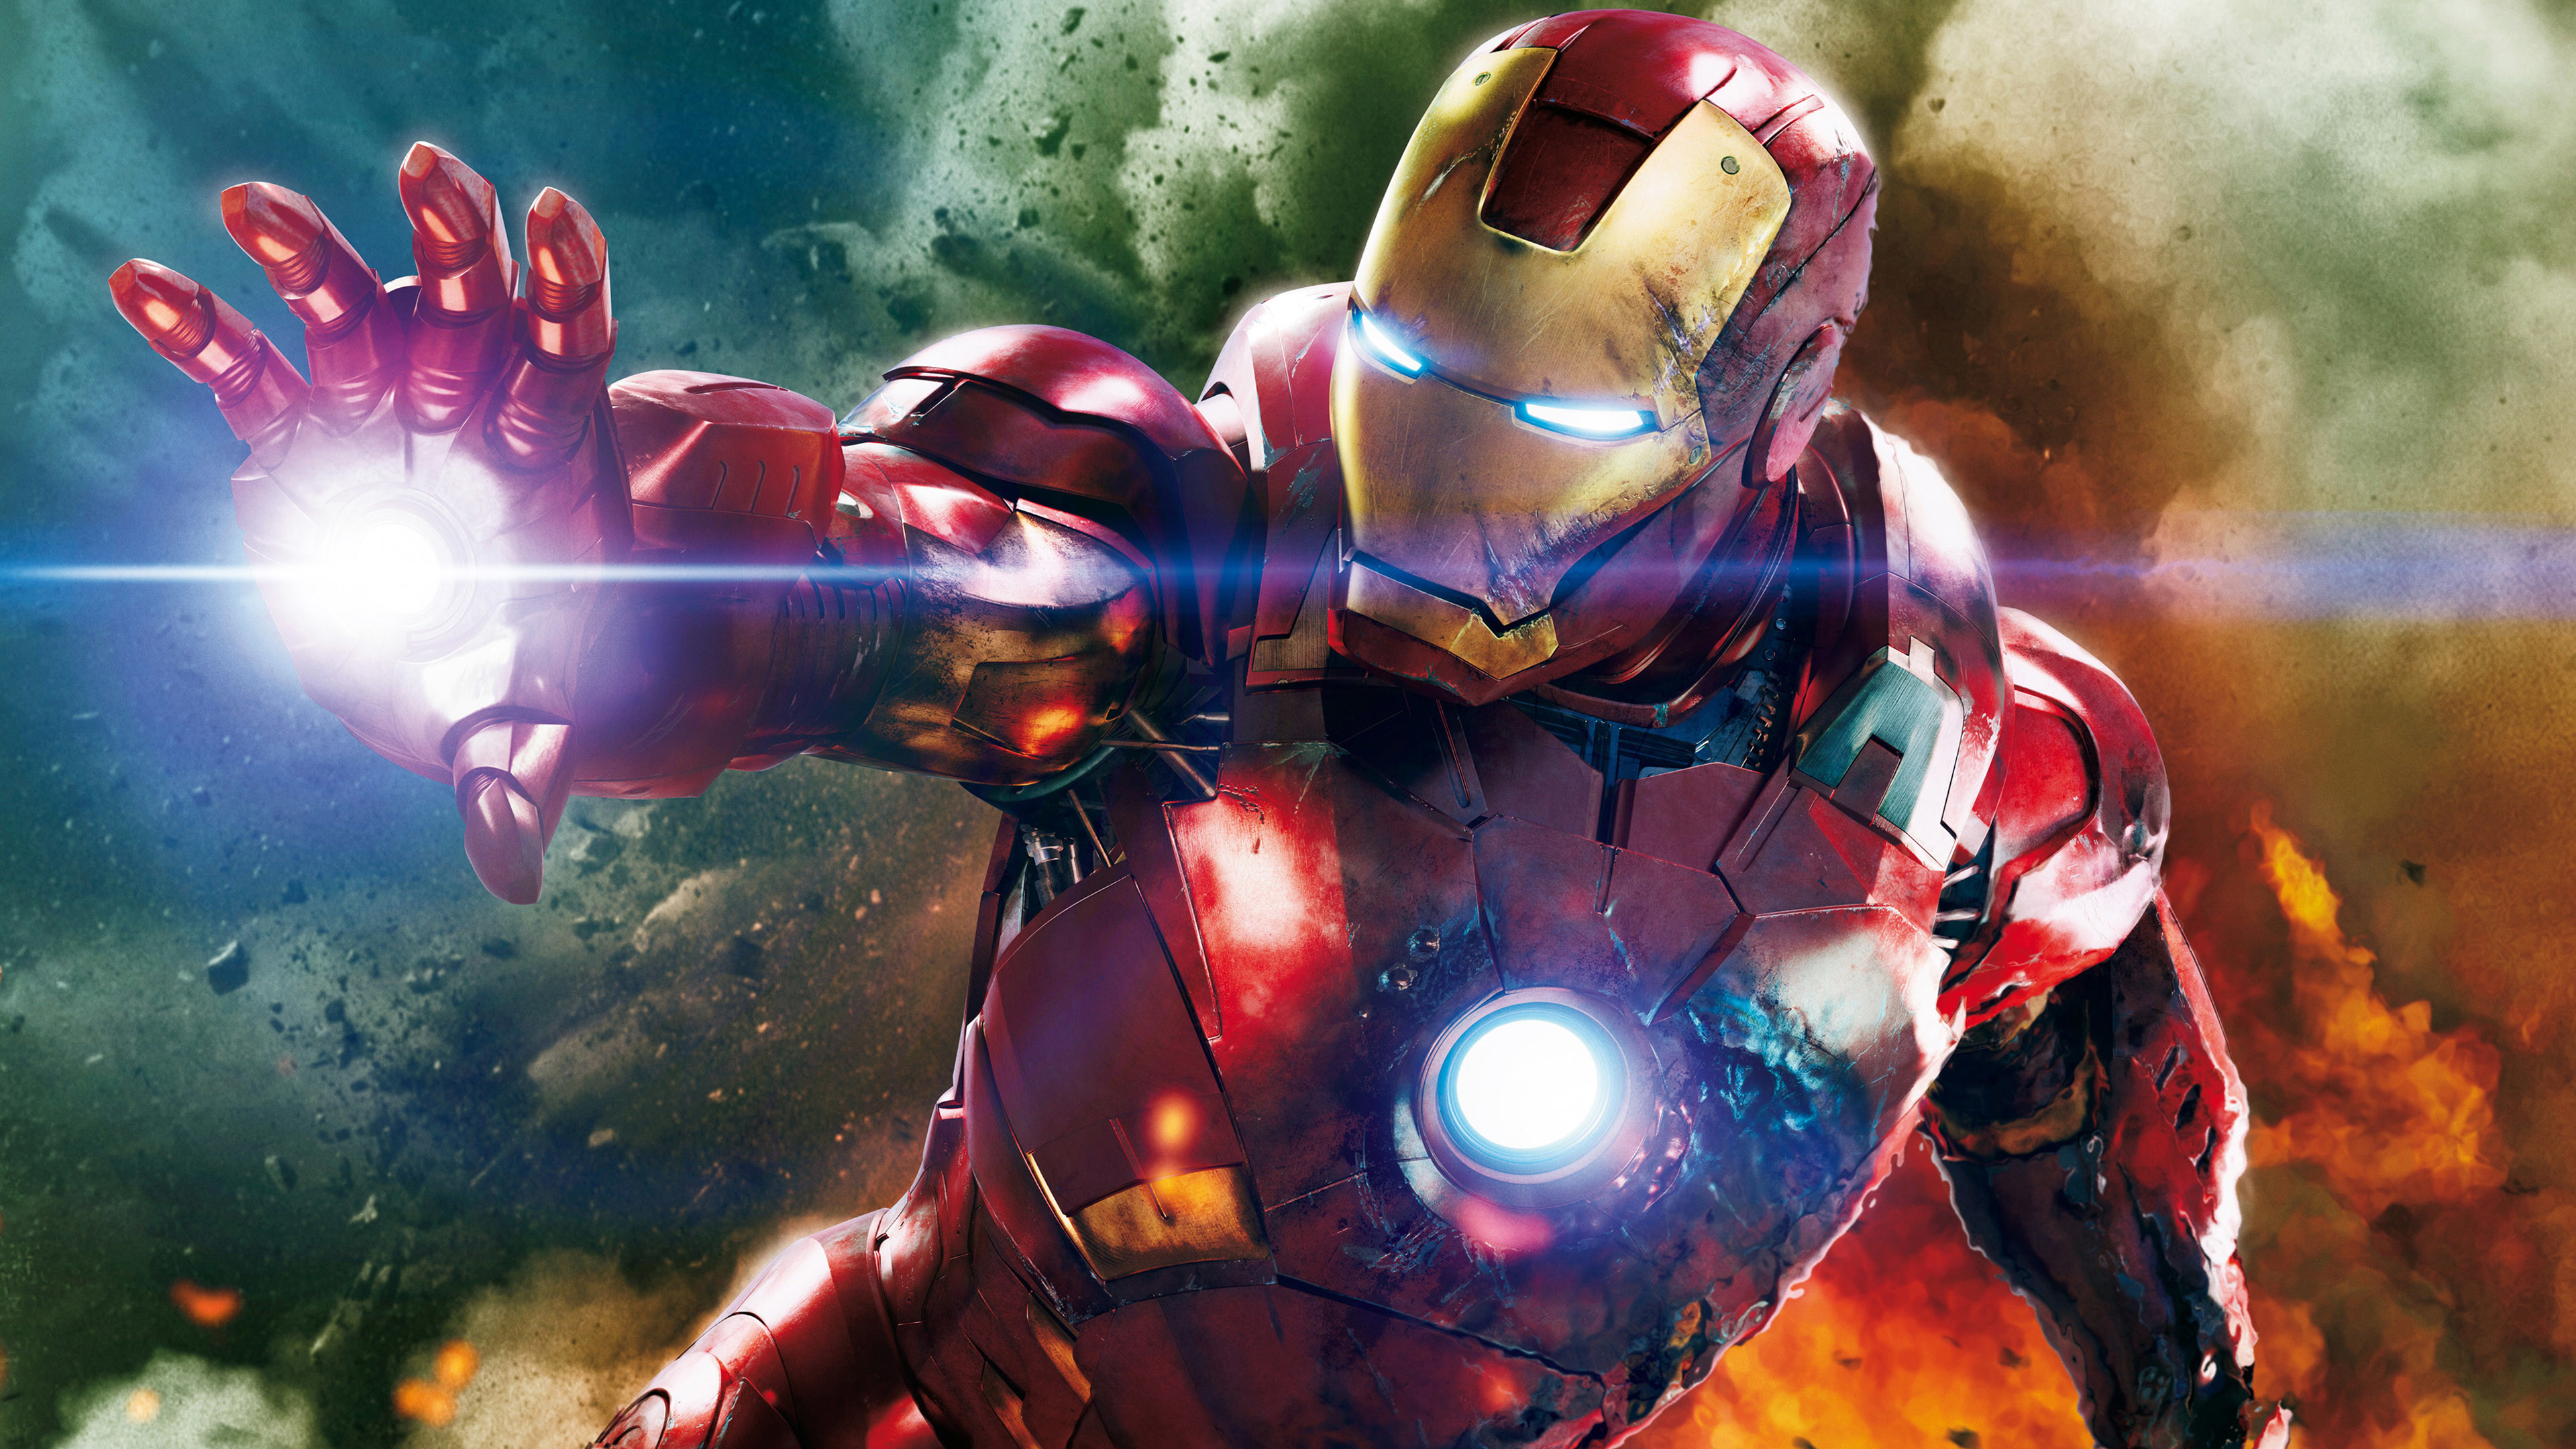 Res: 3840x2160, ... Iron Man The Avengers Wallpaper in 4K ...